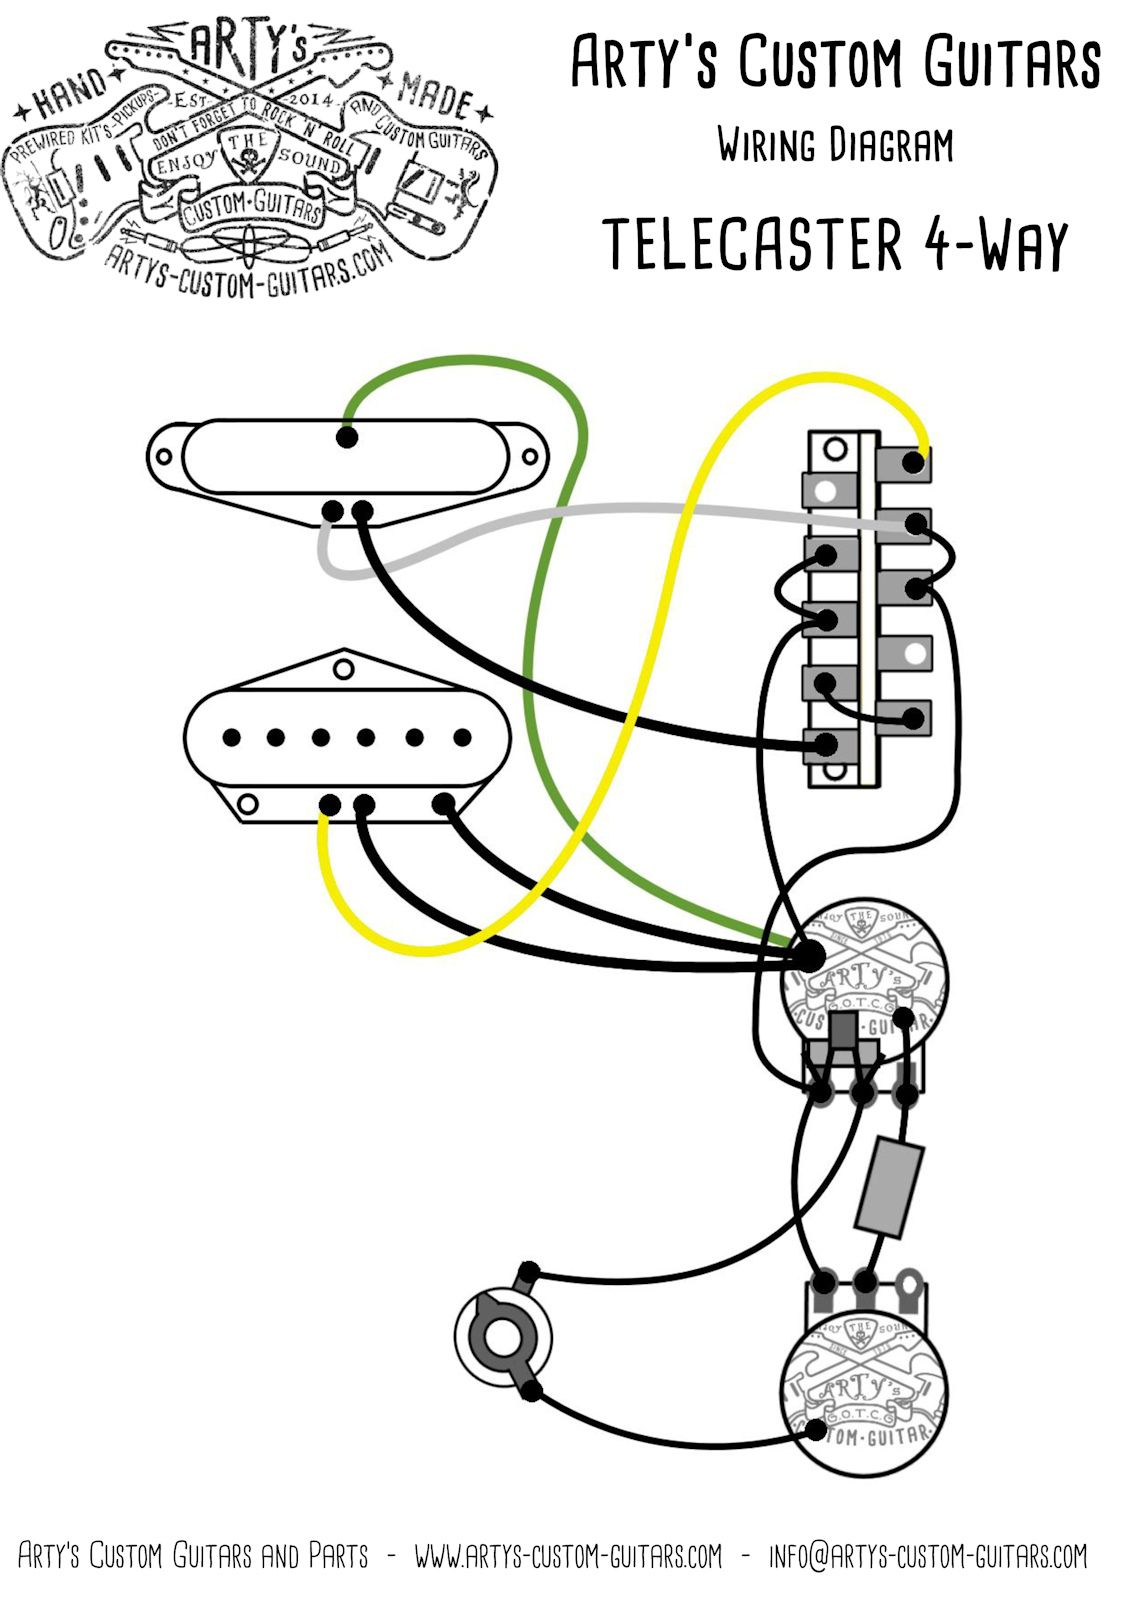 Artys Custom Guitars Wiring Diagram Plan Telecaster Assembly Guitar Wire Harness Tele